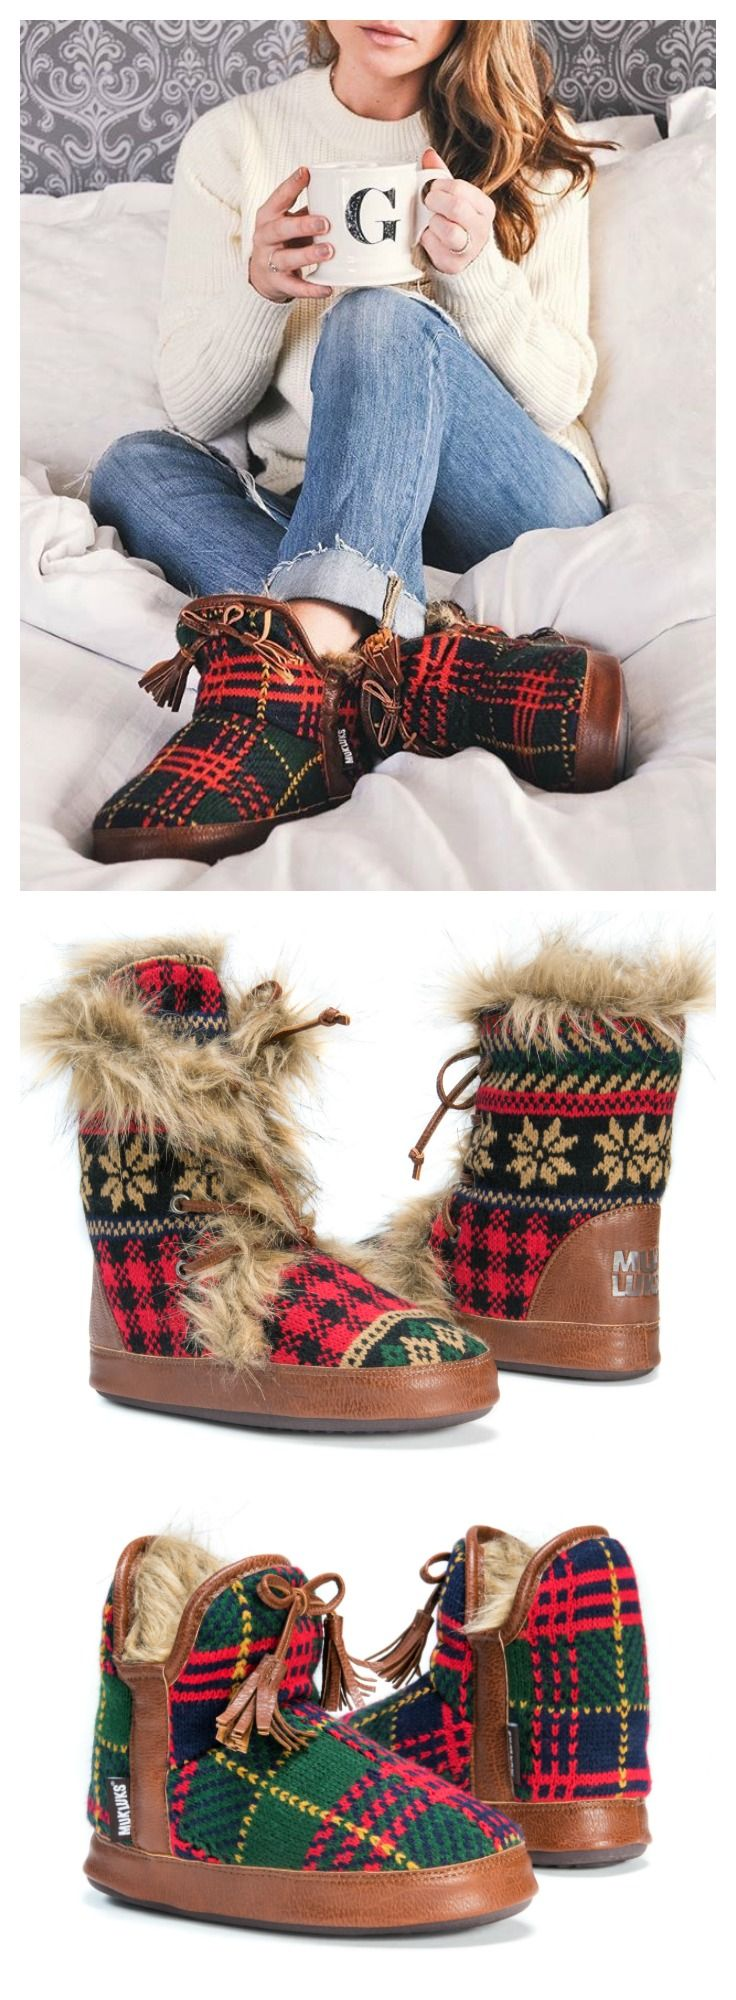 Cozy up in plaid and faux fur this winter with MUK LUKS slippers!